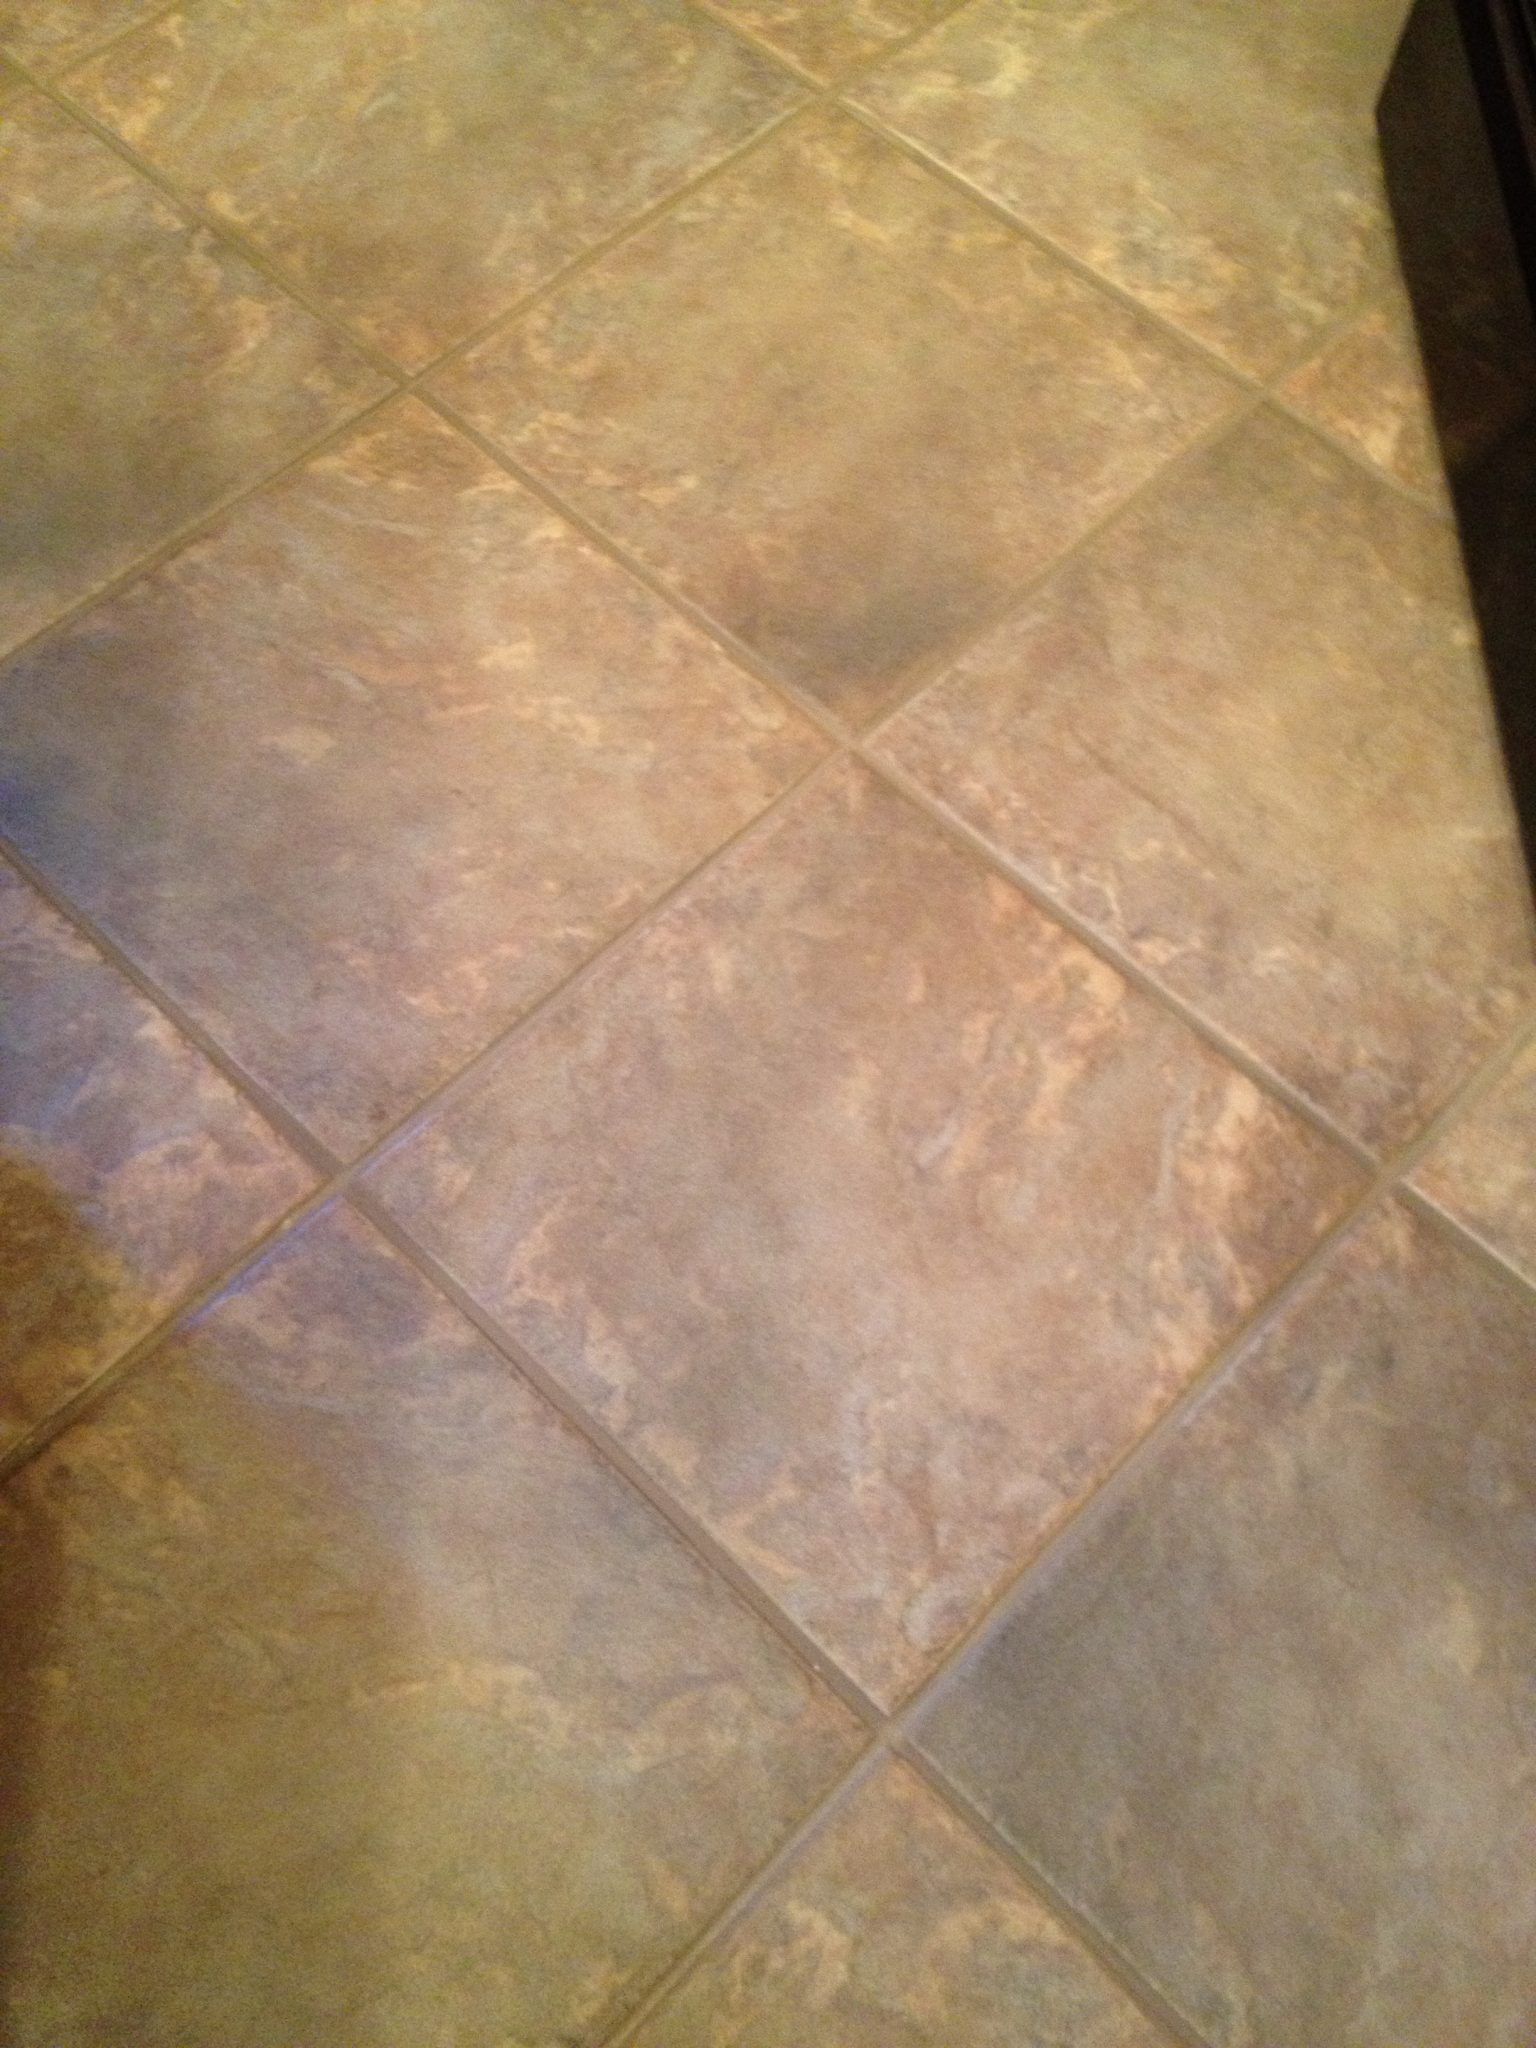 Porcelain Tile And Grout After Cleaning And Sealing